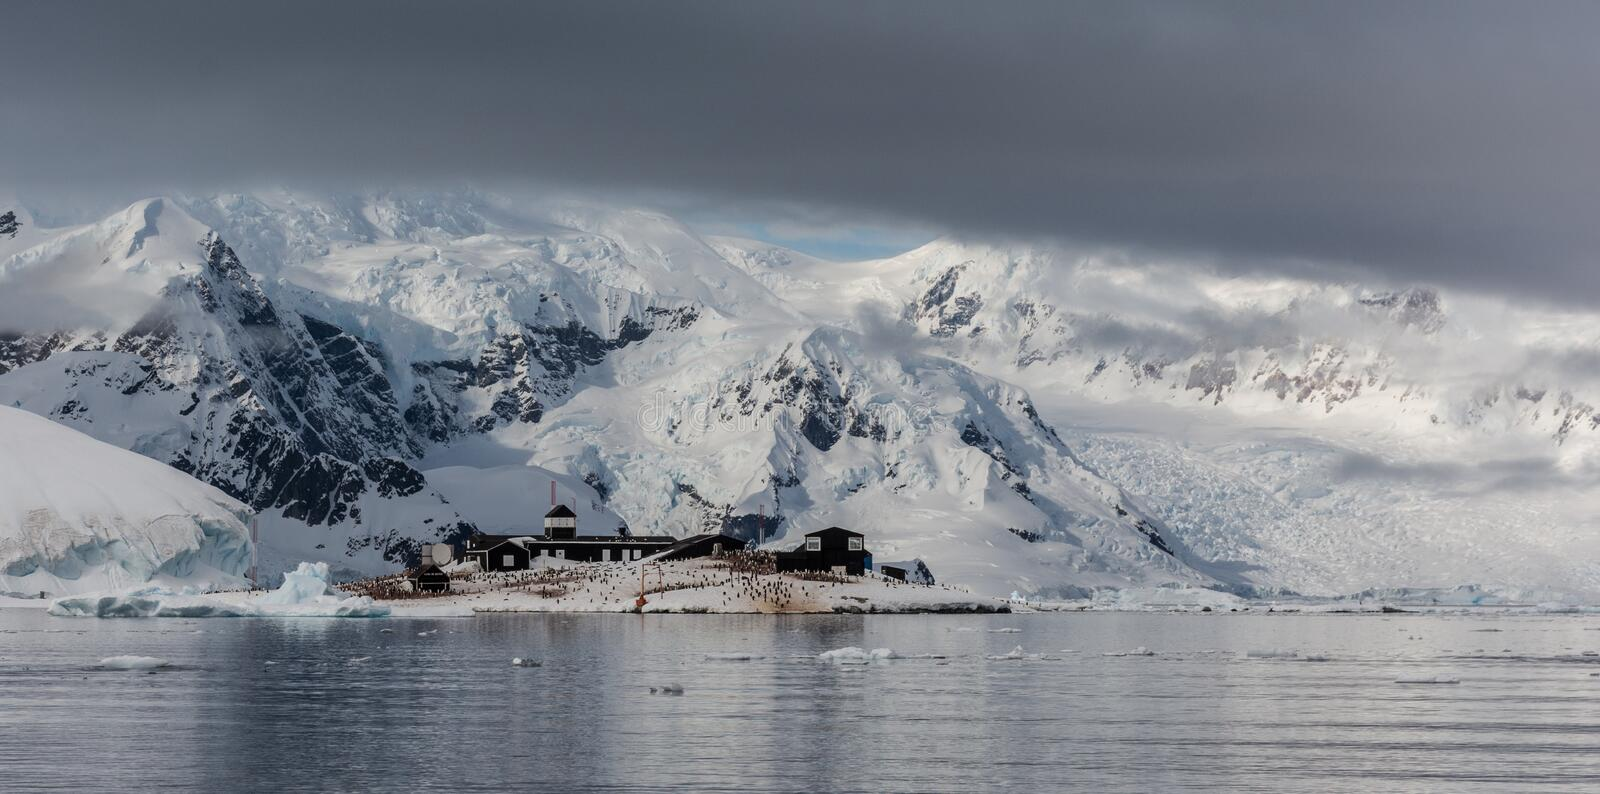 Chile`s González Videla Antarctic Base at Waterboat Point, Paradise Bay, Antarctic Peninsula. The magnificent scenery around Chile`s González Videla royalty free stock images